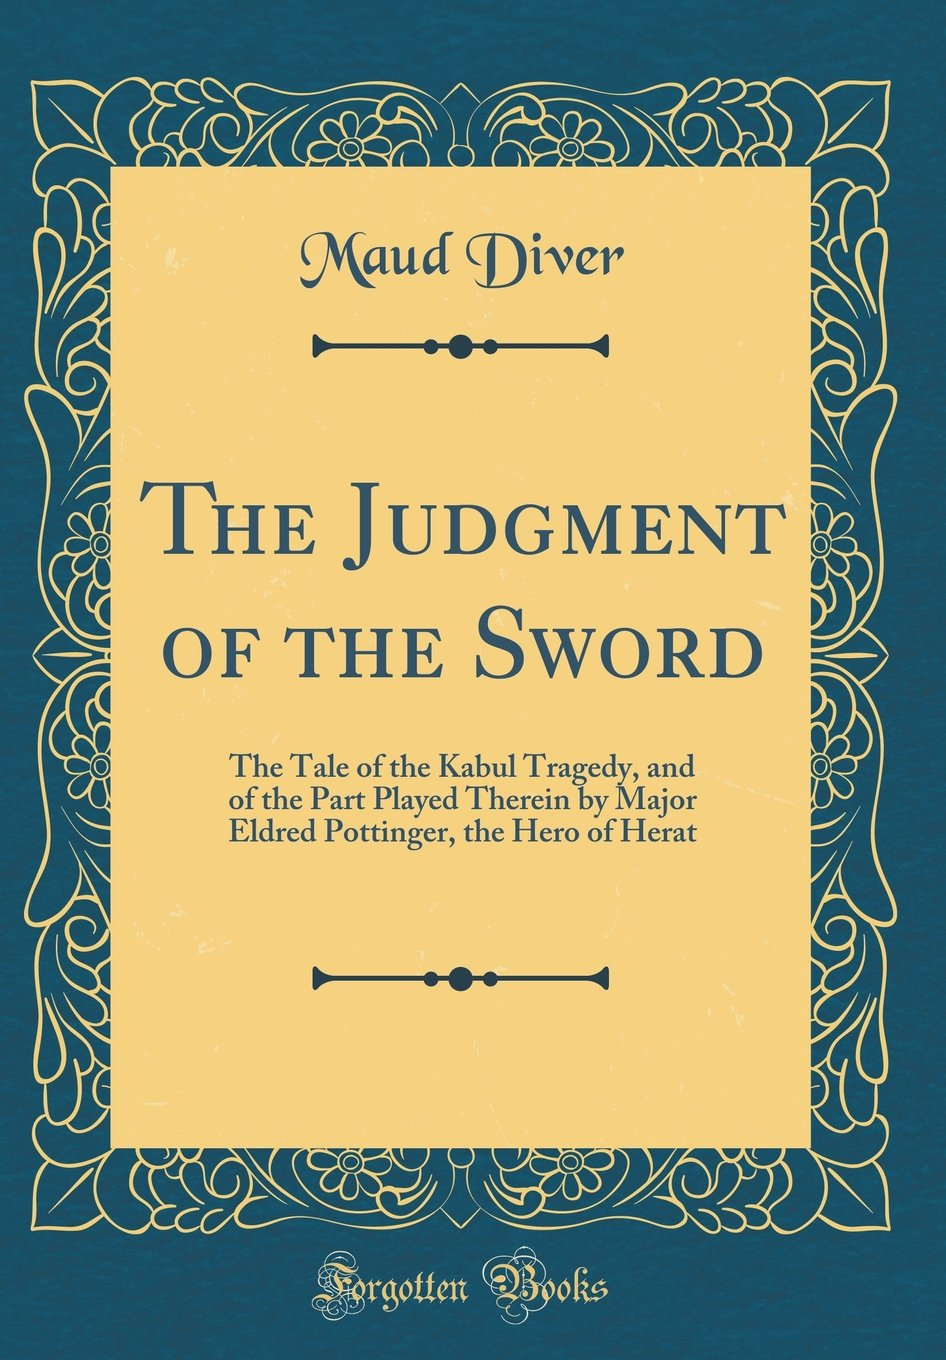 Download The Judgment of the Sword: The Tale of the Kabul Tragedy, and of the Part Played Therein by Major Eldred Pottinger, the Hero of Herat (Classic Reprint) pdf epub